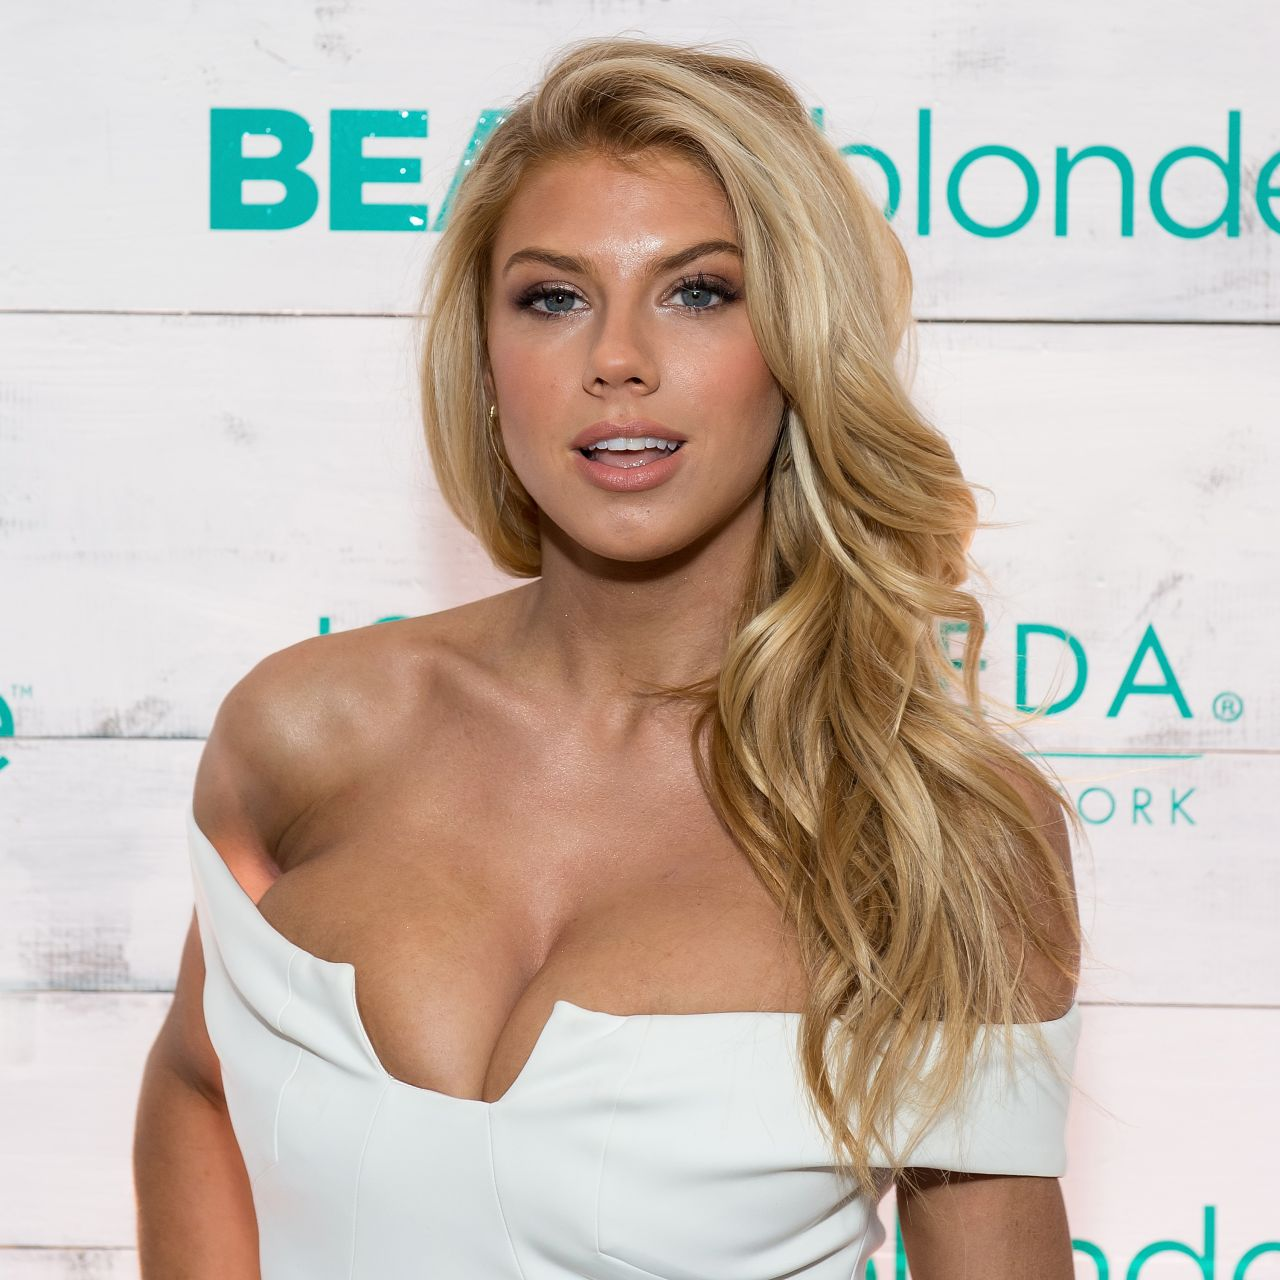 Charlotte McKinney - John Frieda Hair Care Beach Blonde Collection Party in New York City, Feb. 2015